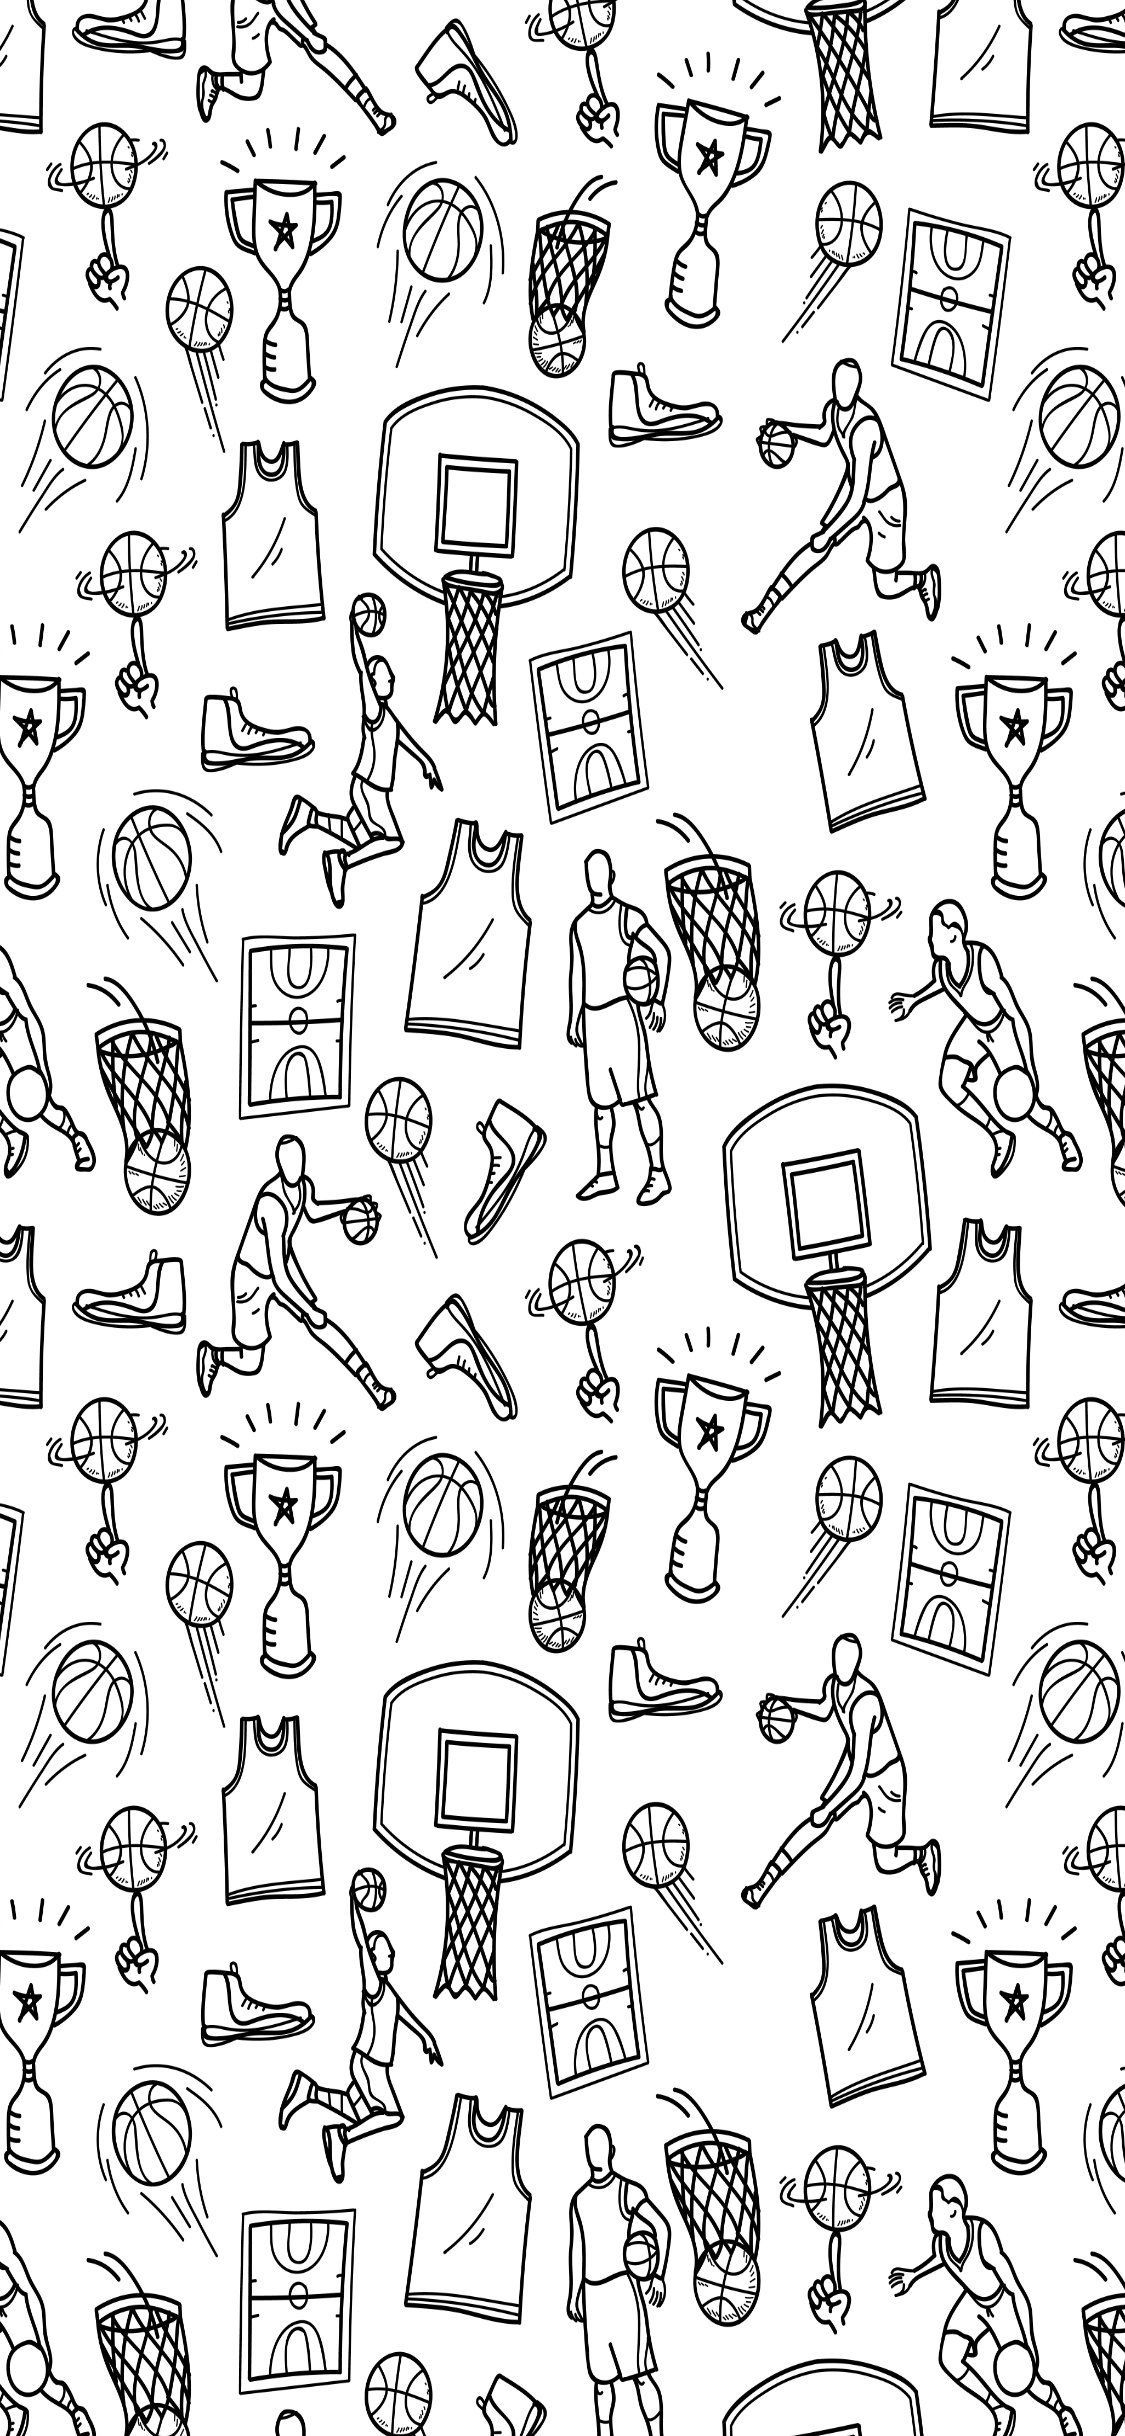 Latest Nba Wallpaper Download Free Hd Wallpapers Background Images In 2020 Basketball Iphone Wallpaper Basketball Doodle Basketball Wallpaper